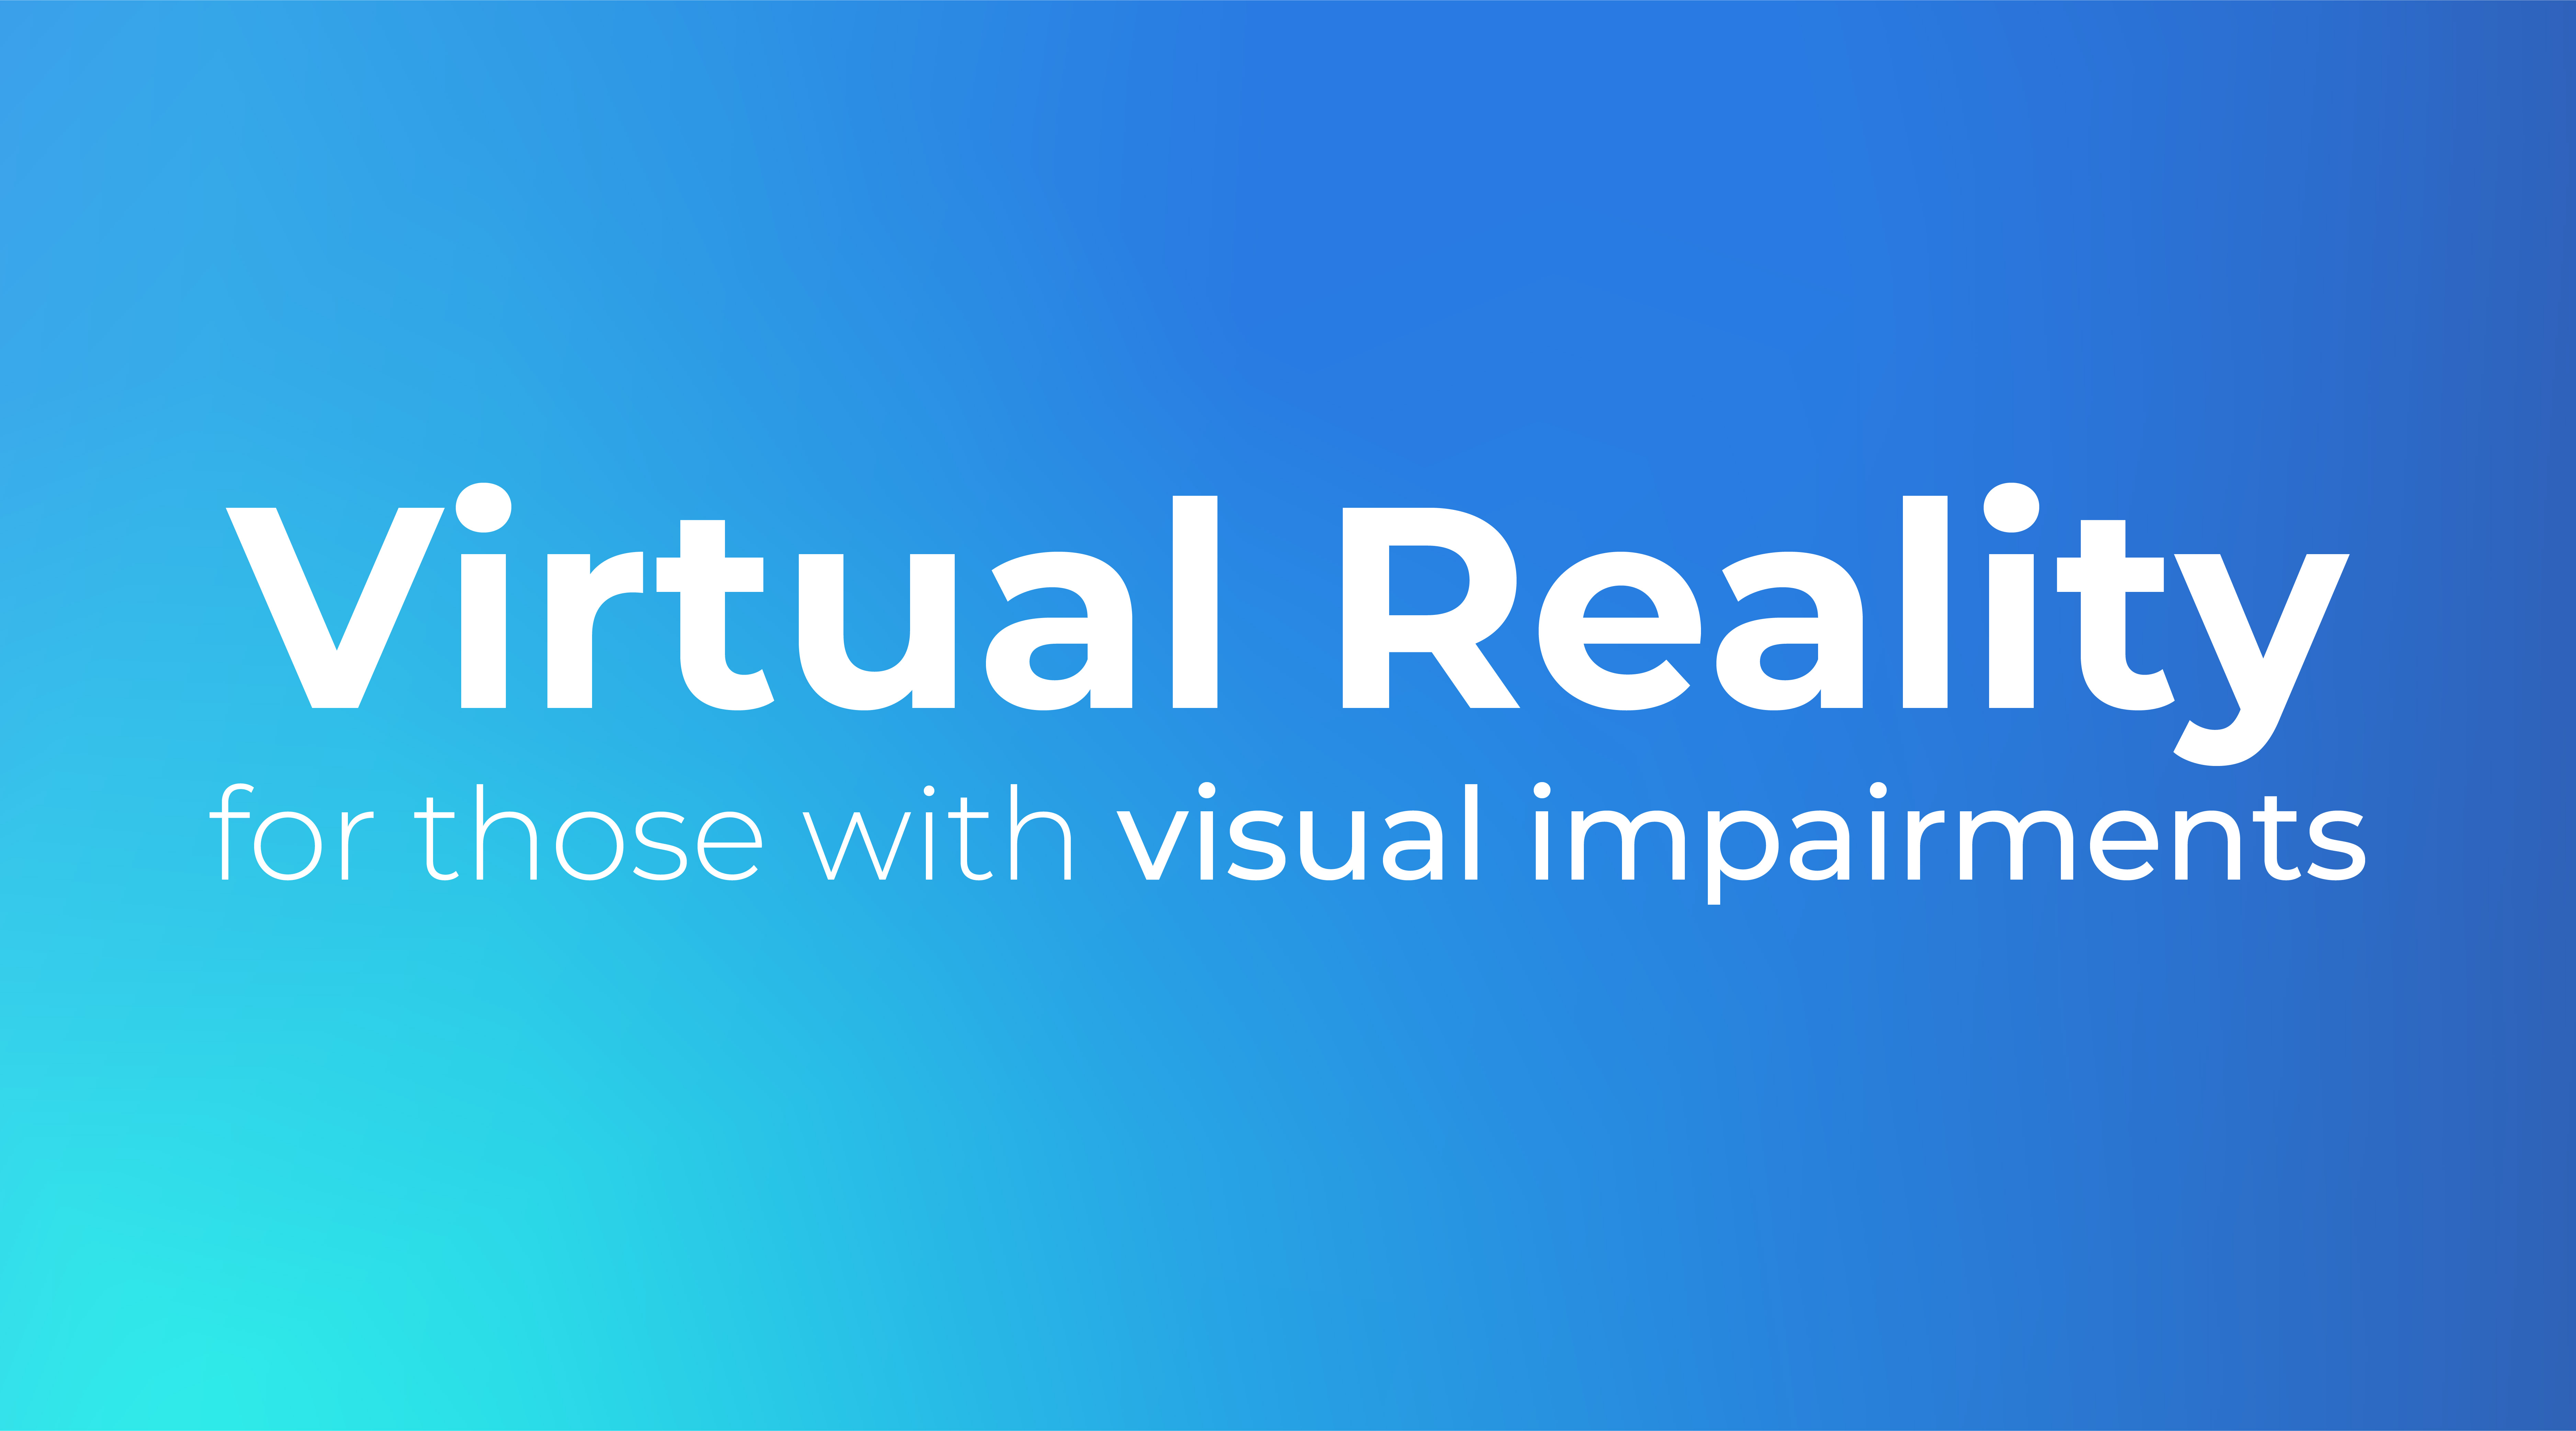 Virtual Reality for Visual Impairments